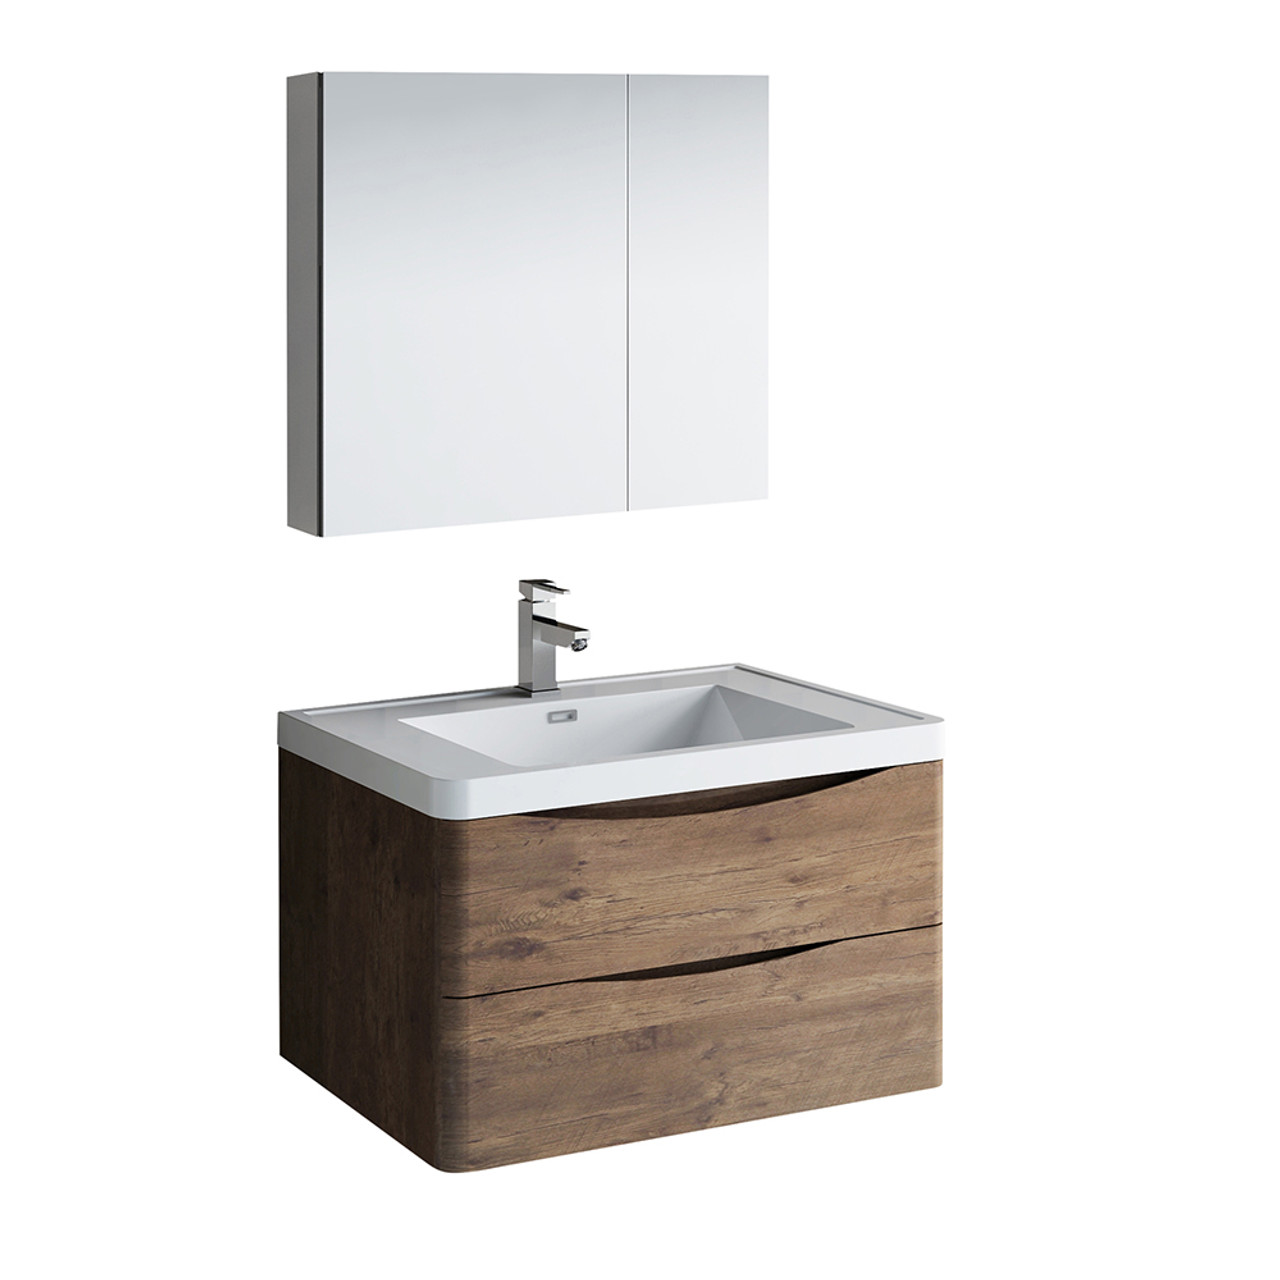 Picture of: Tuscany 32 Wall Hung Modern Bathroom Vanity W Medicine Cabinet Fvn9032 Residential Baths